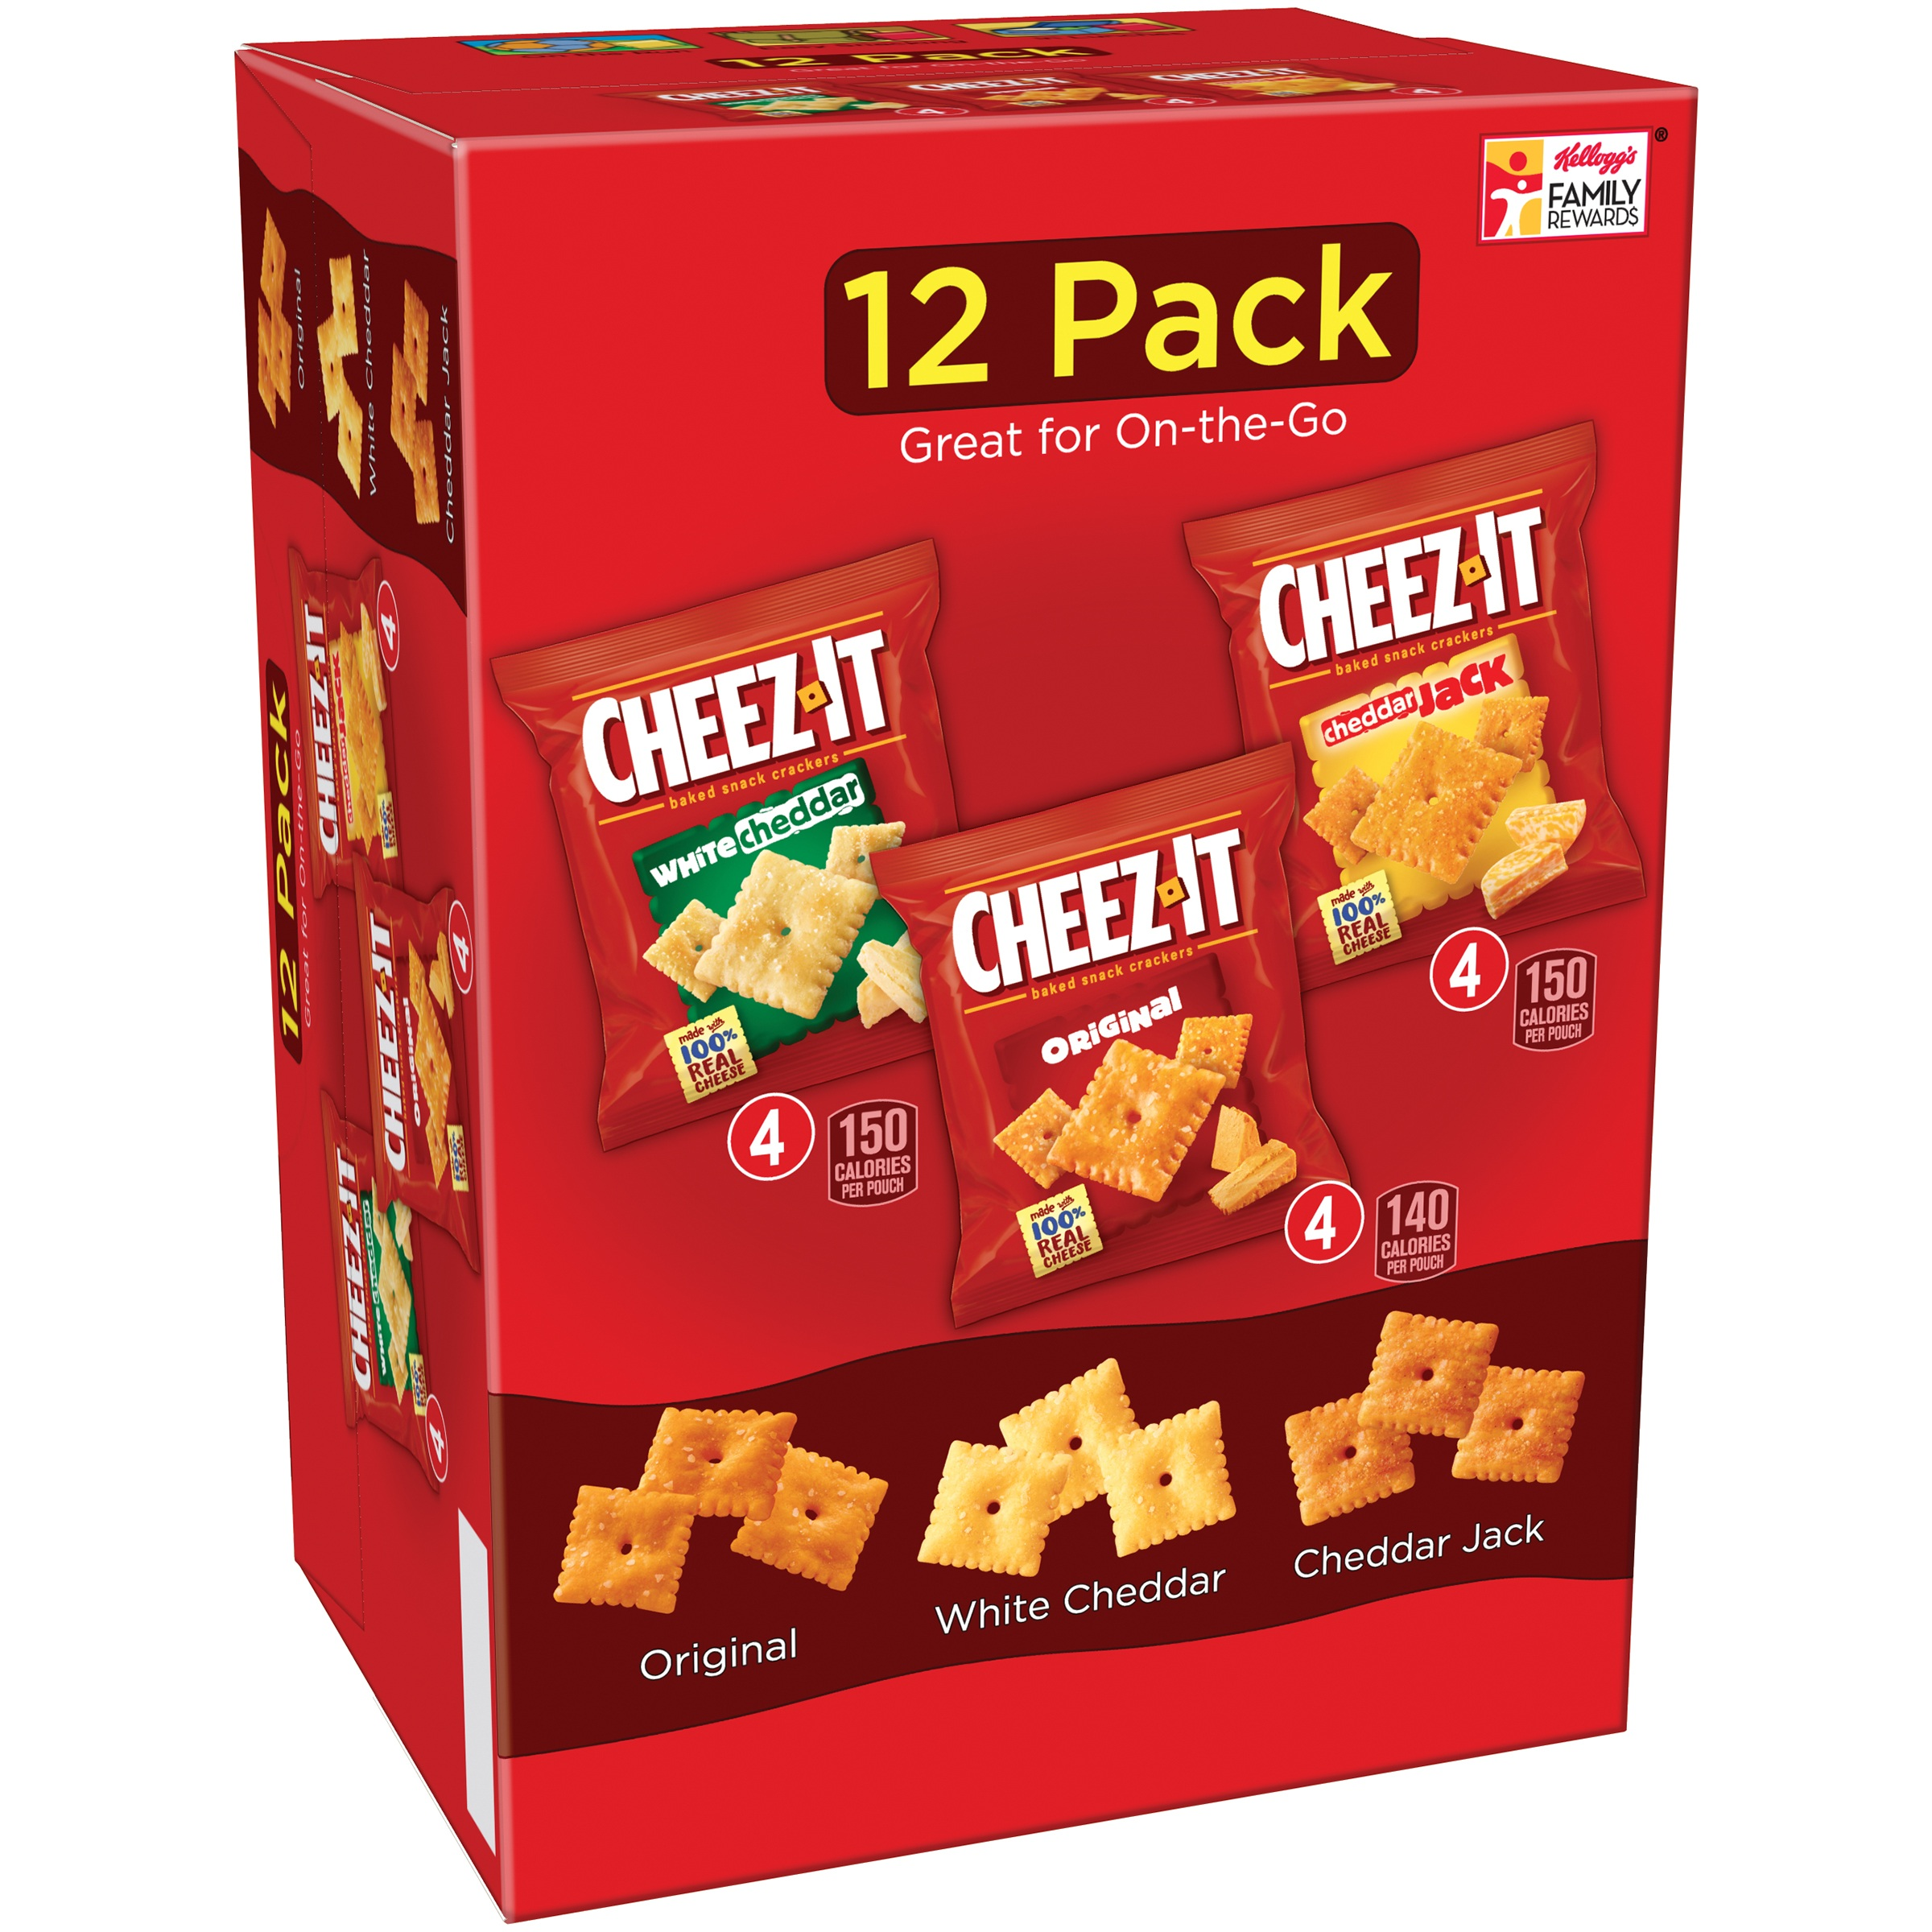 Cheez-It Baked Snack Crackers Variety Pack 12.1 oz. Box by Sunshine Biscuits, LLC